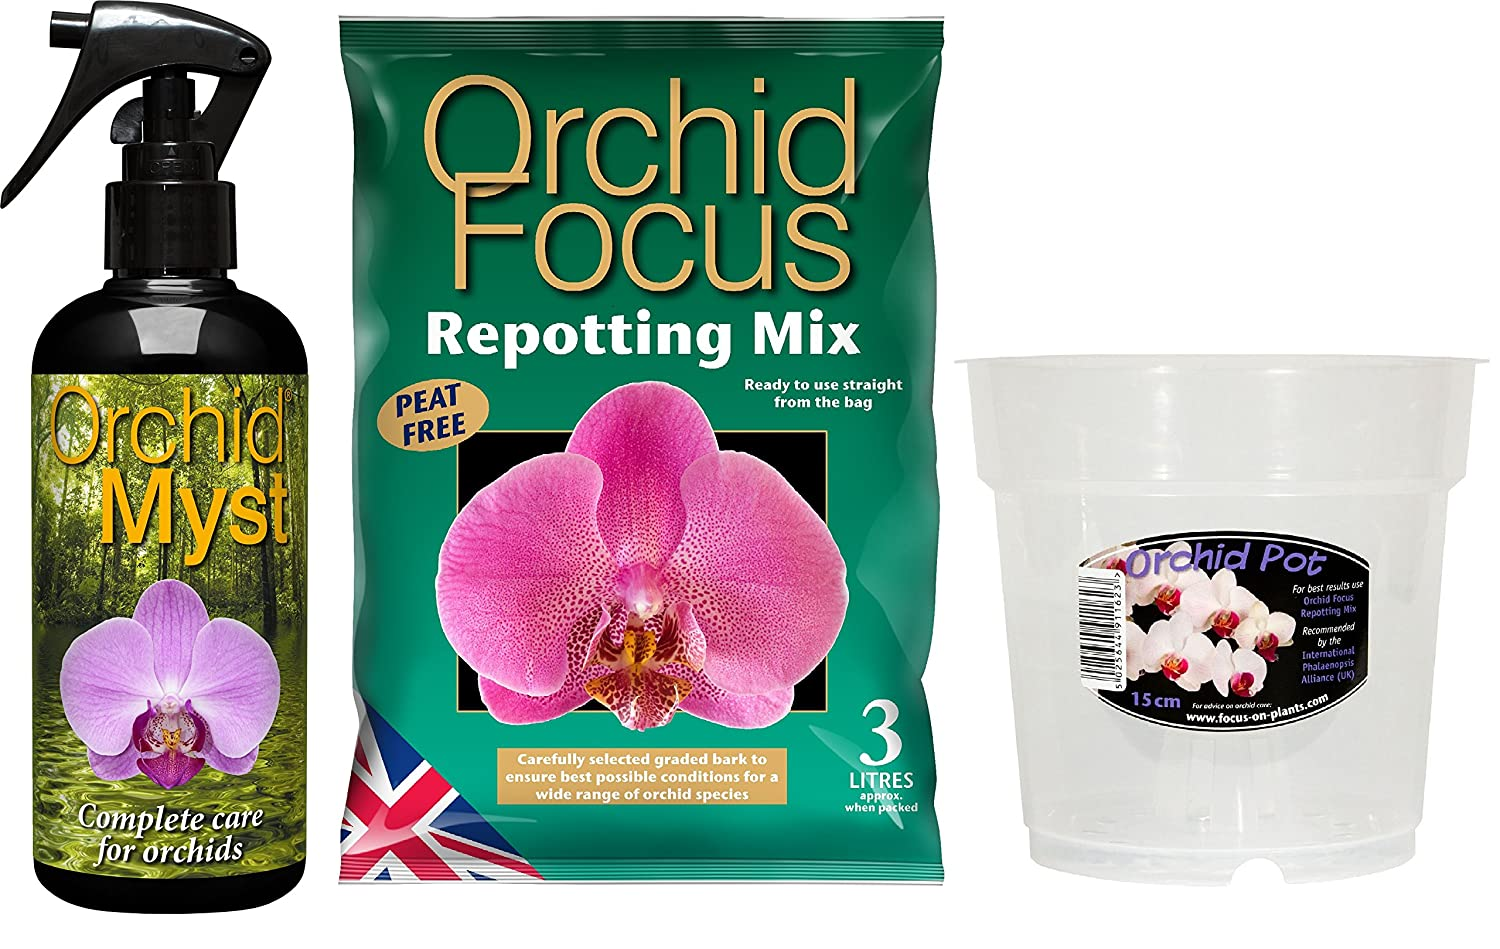 Orchid Myst 300ml, Orchid Repotting Mix 3L and 15cm Clear Orchid Pot Orchid Kit Growth Technology